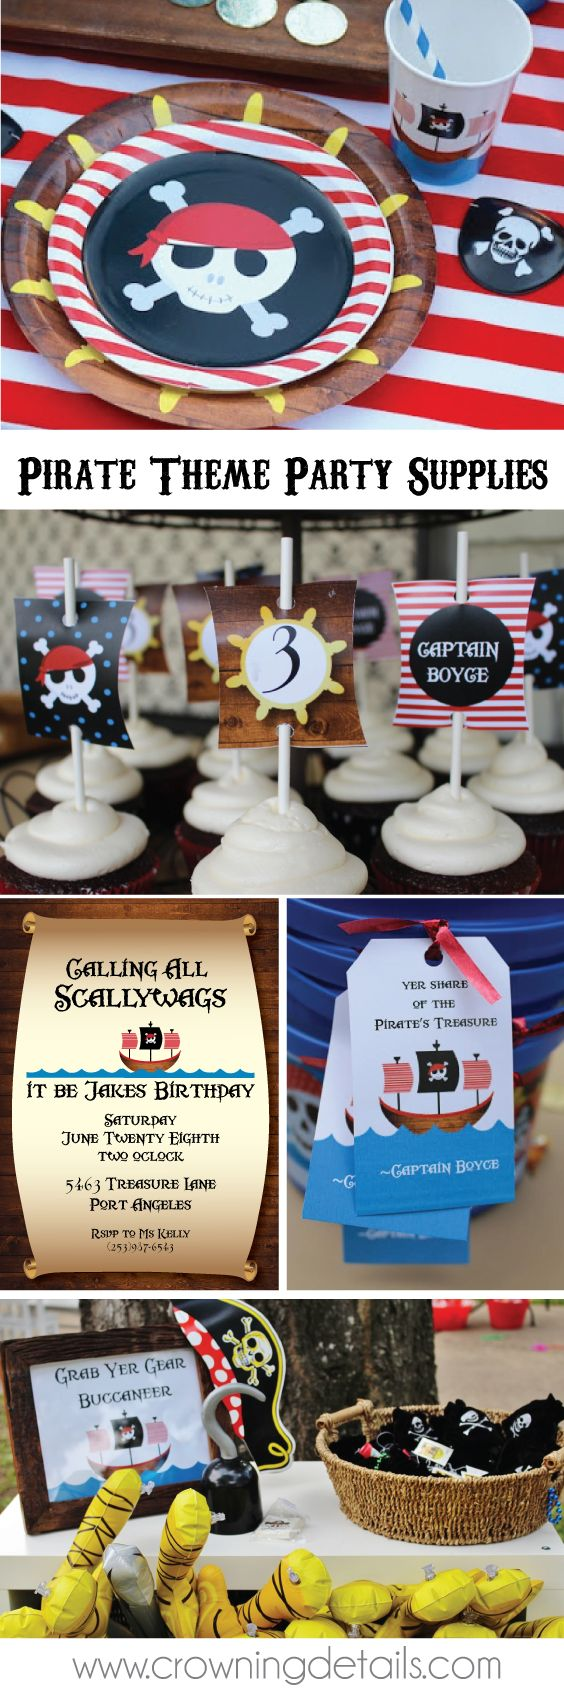 Best 25+ Pirate party supplies ideas on Pinterest | Pirate party ...